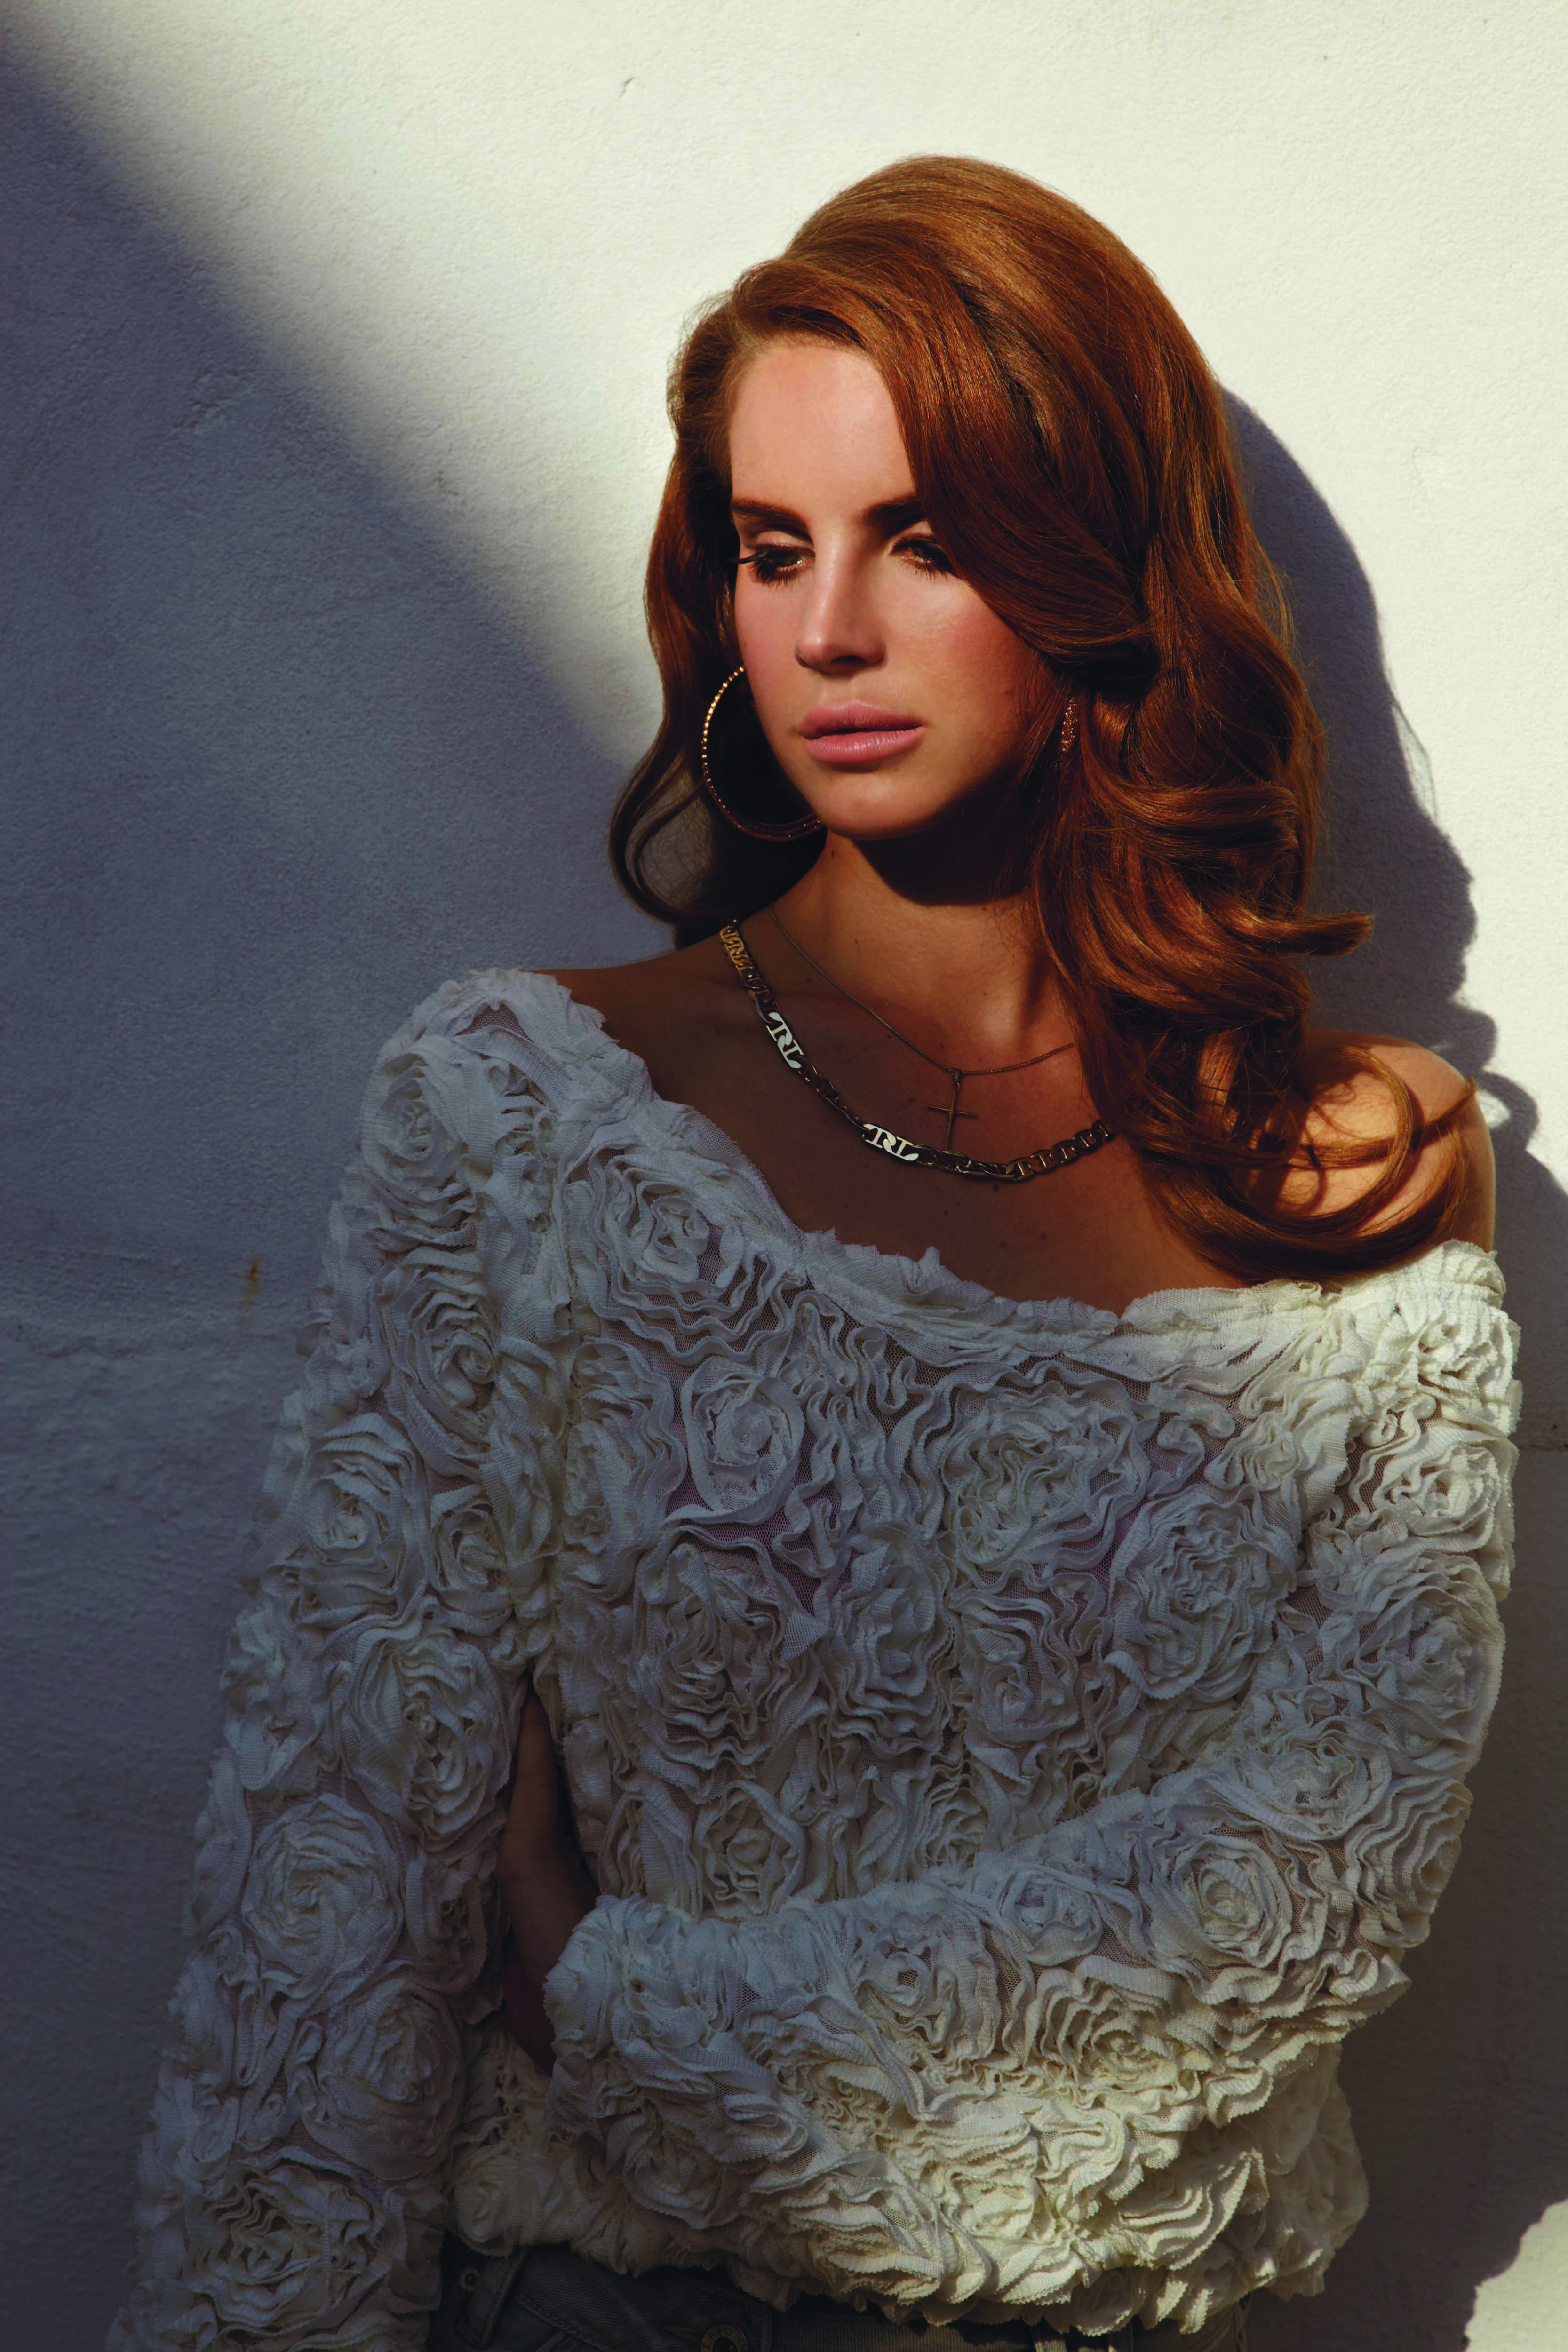 Is Lana Del Rey The New Face Of H&M?